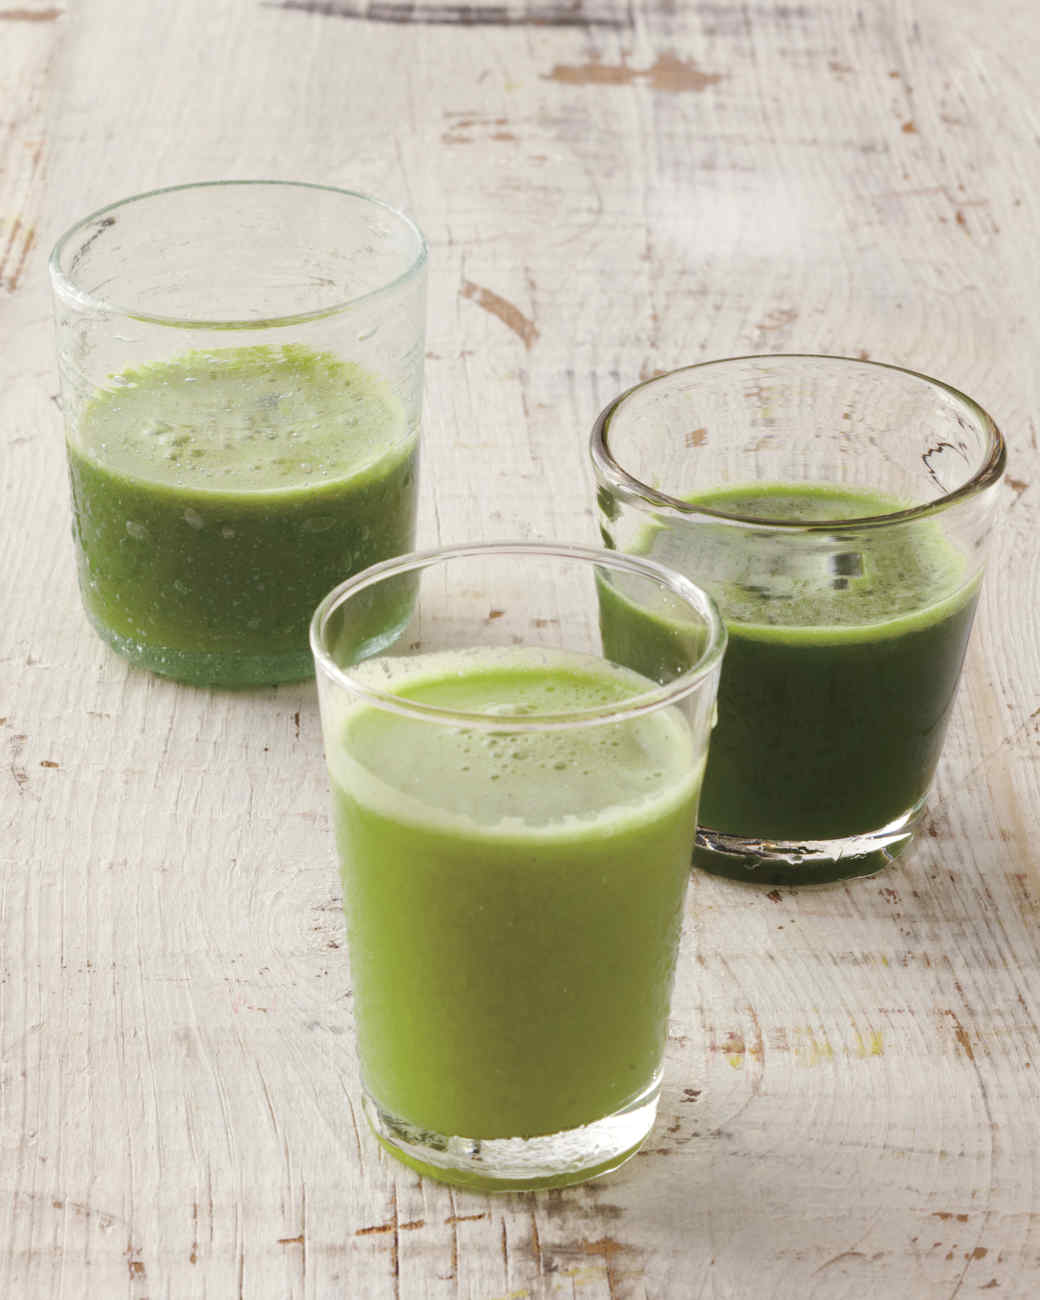 Pineapple-Spinach Juice